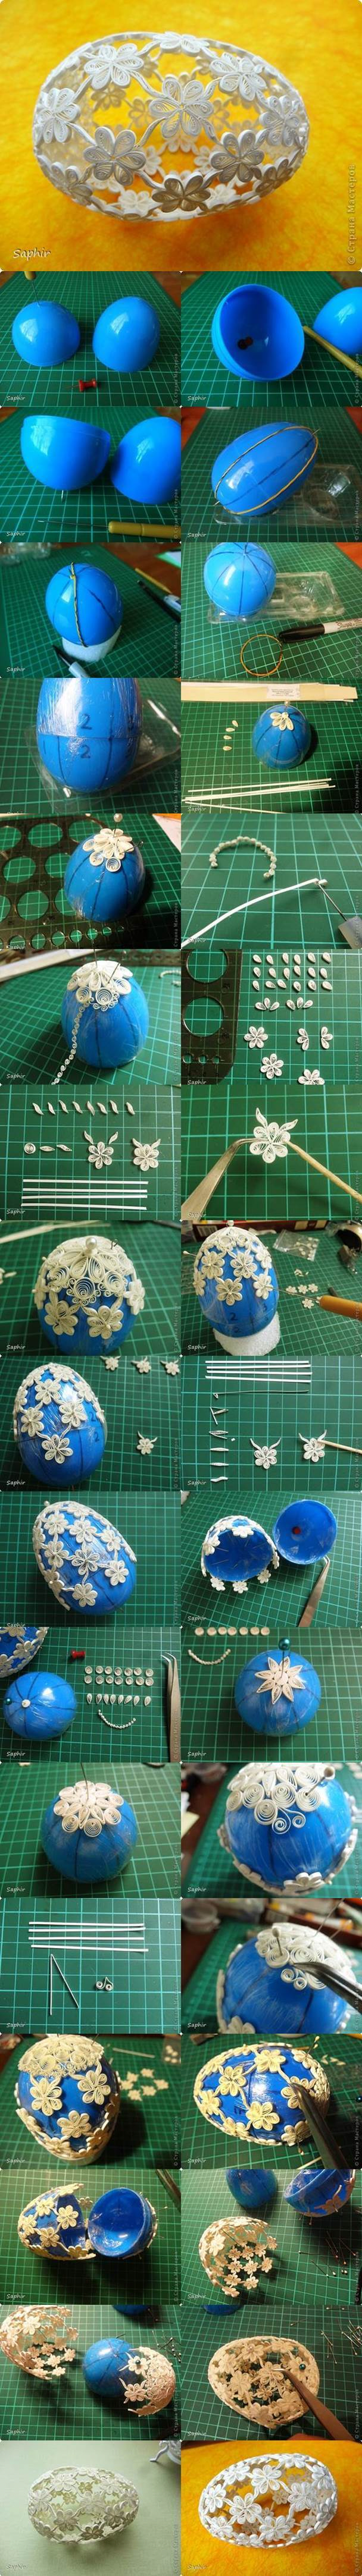 DIY Easter Egg with Quiling Flower Decoration2